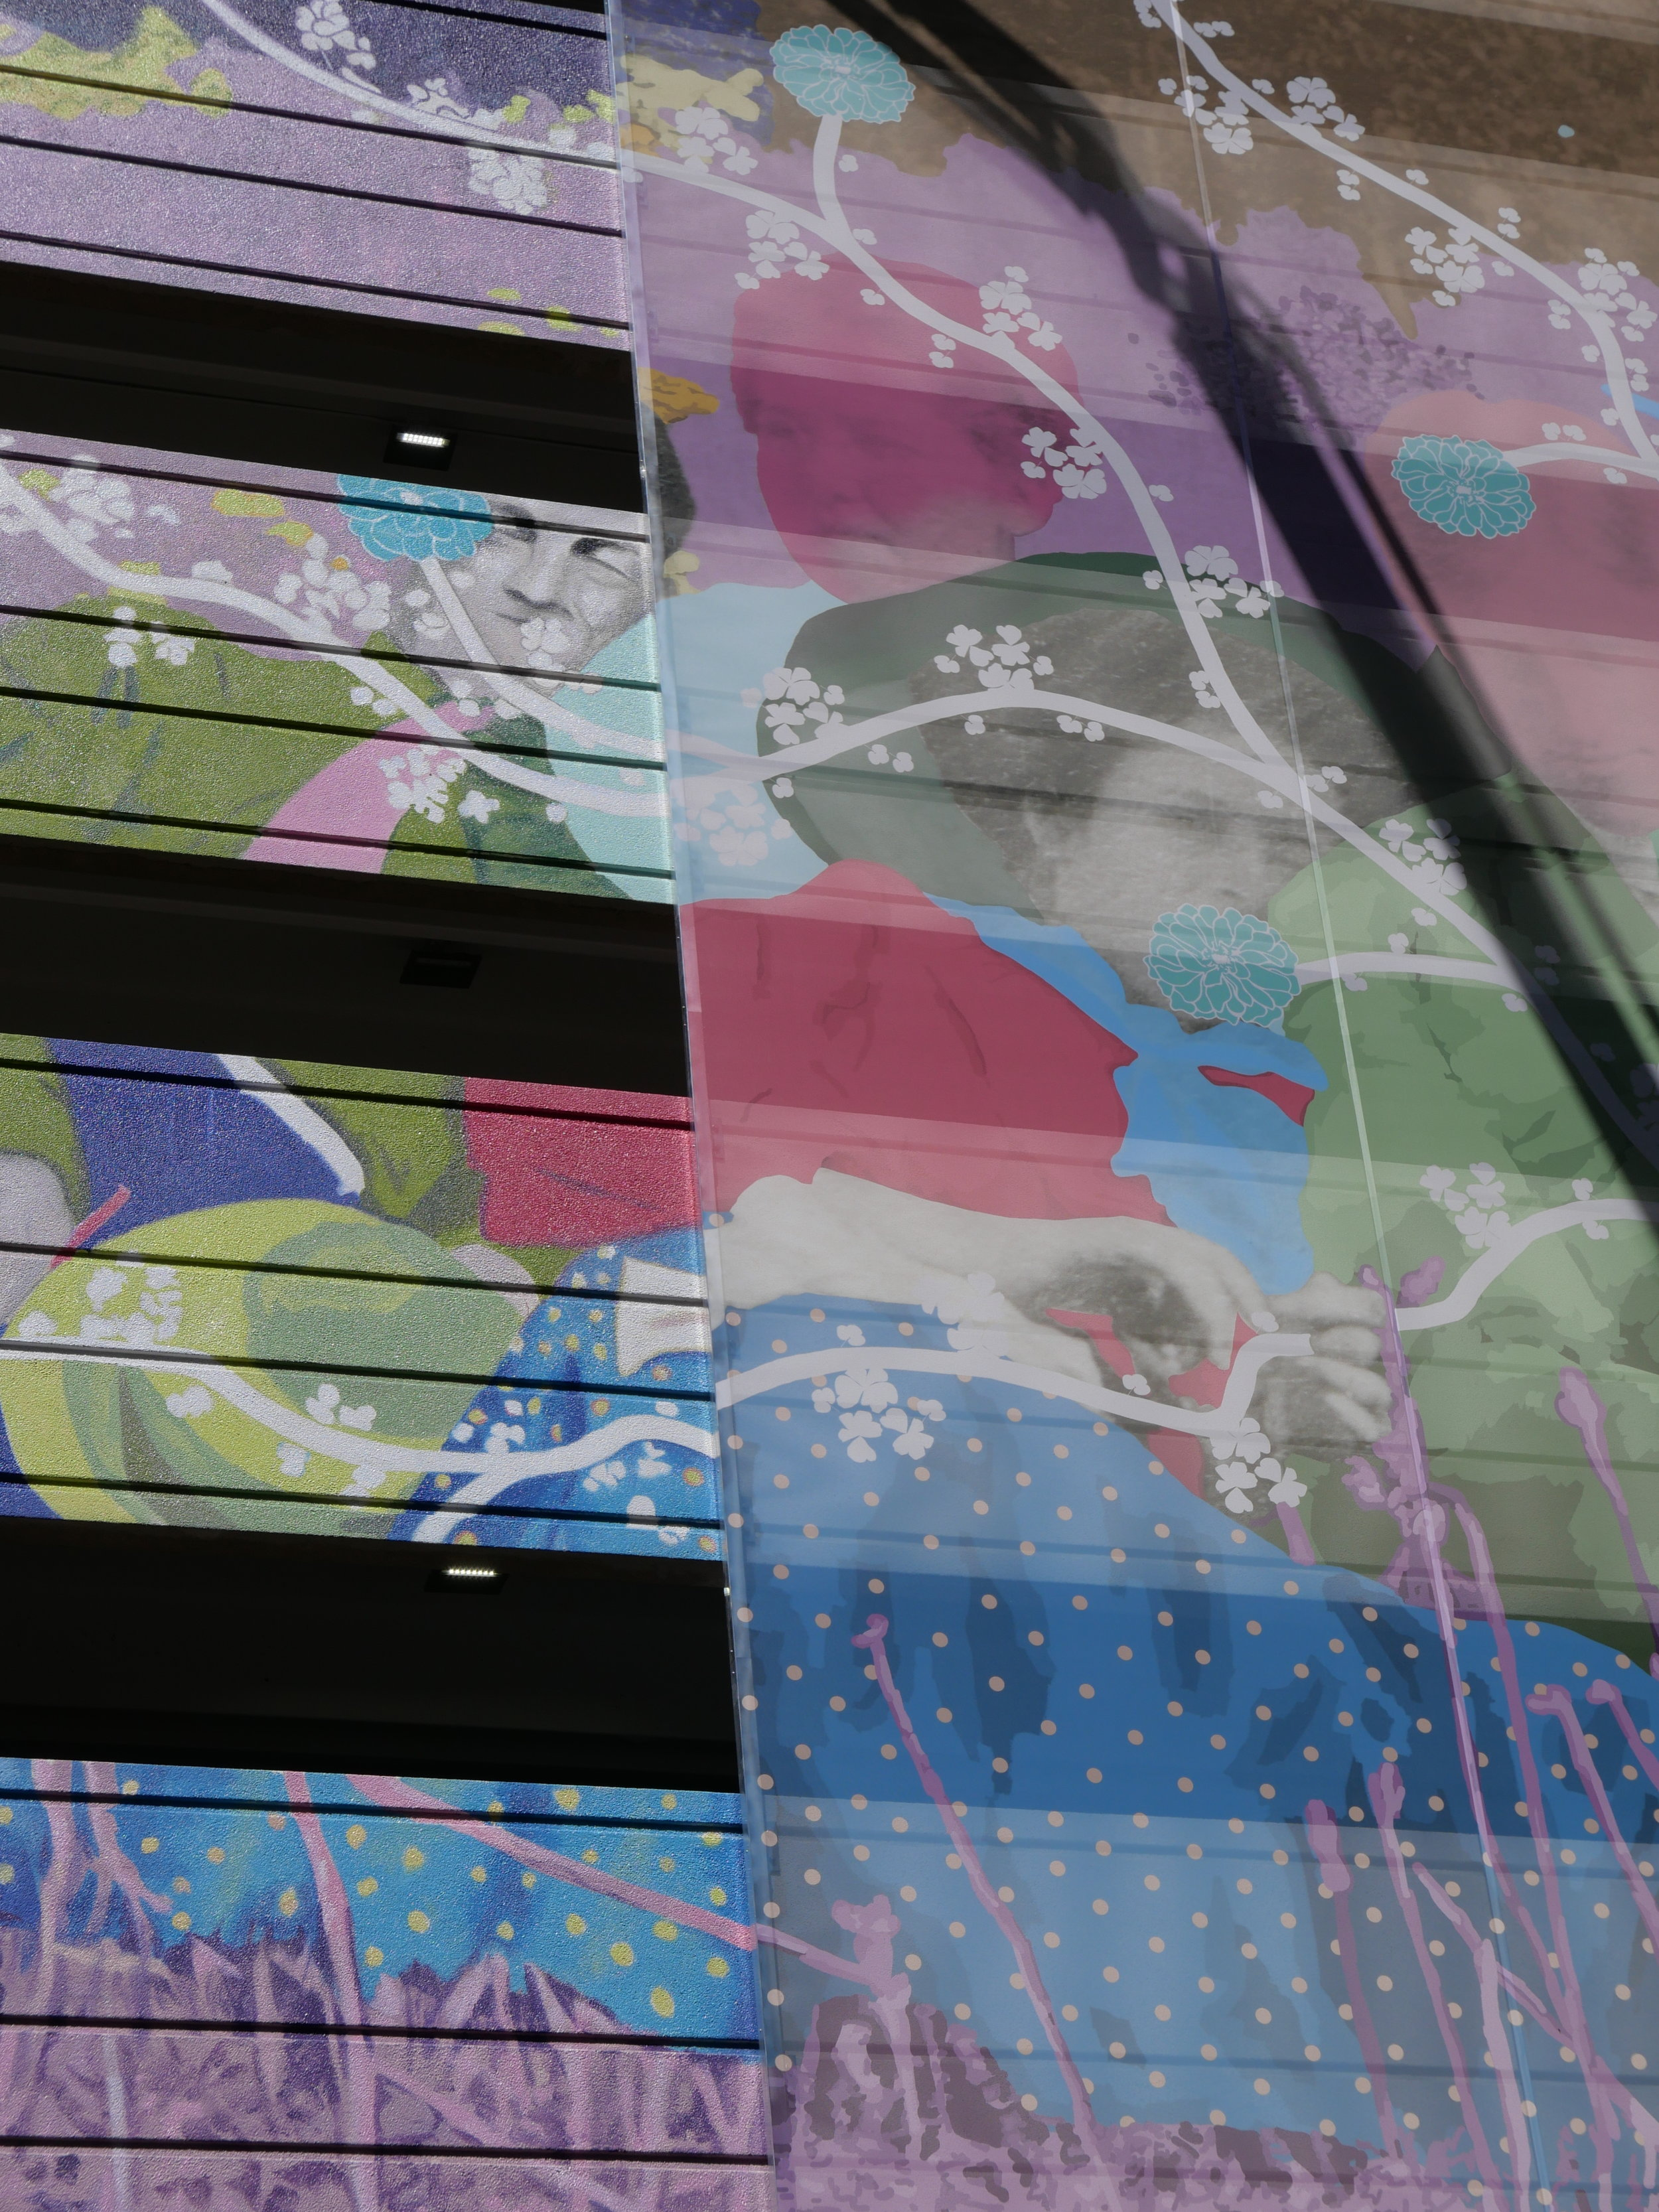 9th and Colorado_daisy patton_public art services_j grant projects_13.JPG